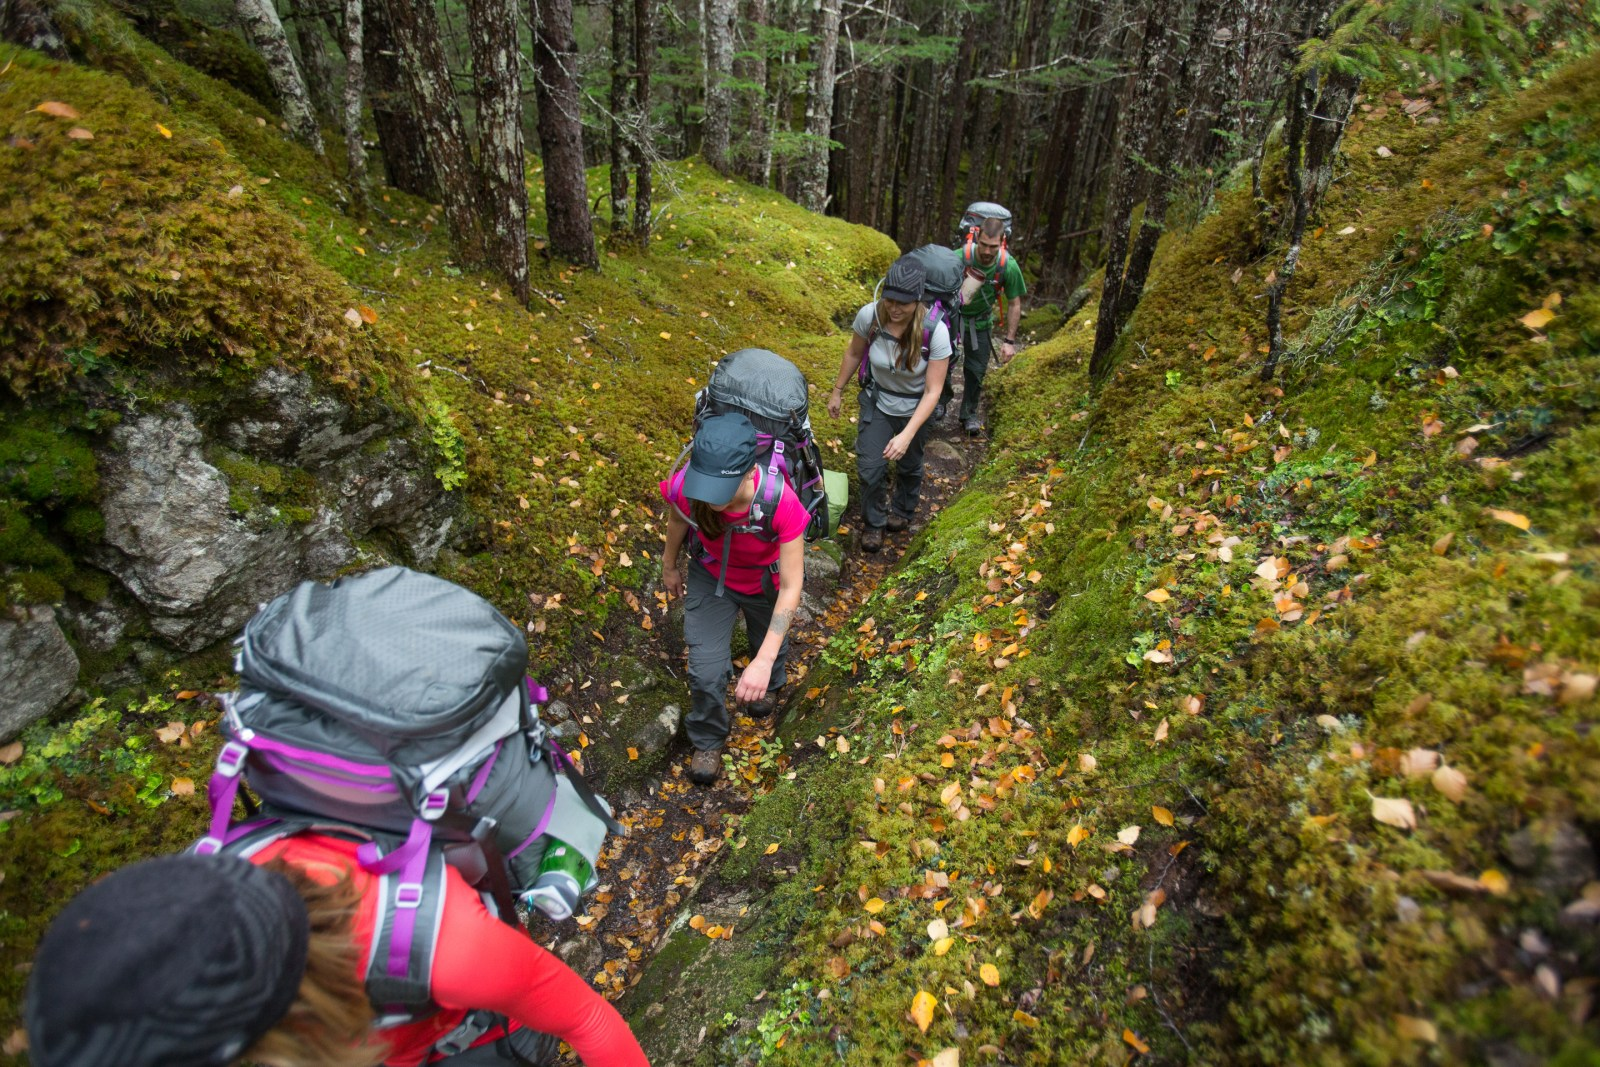 group of hikers respecting outdoor etiquette